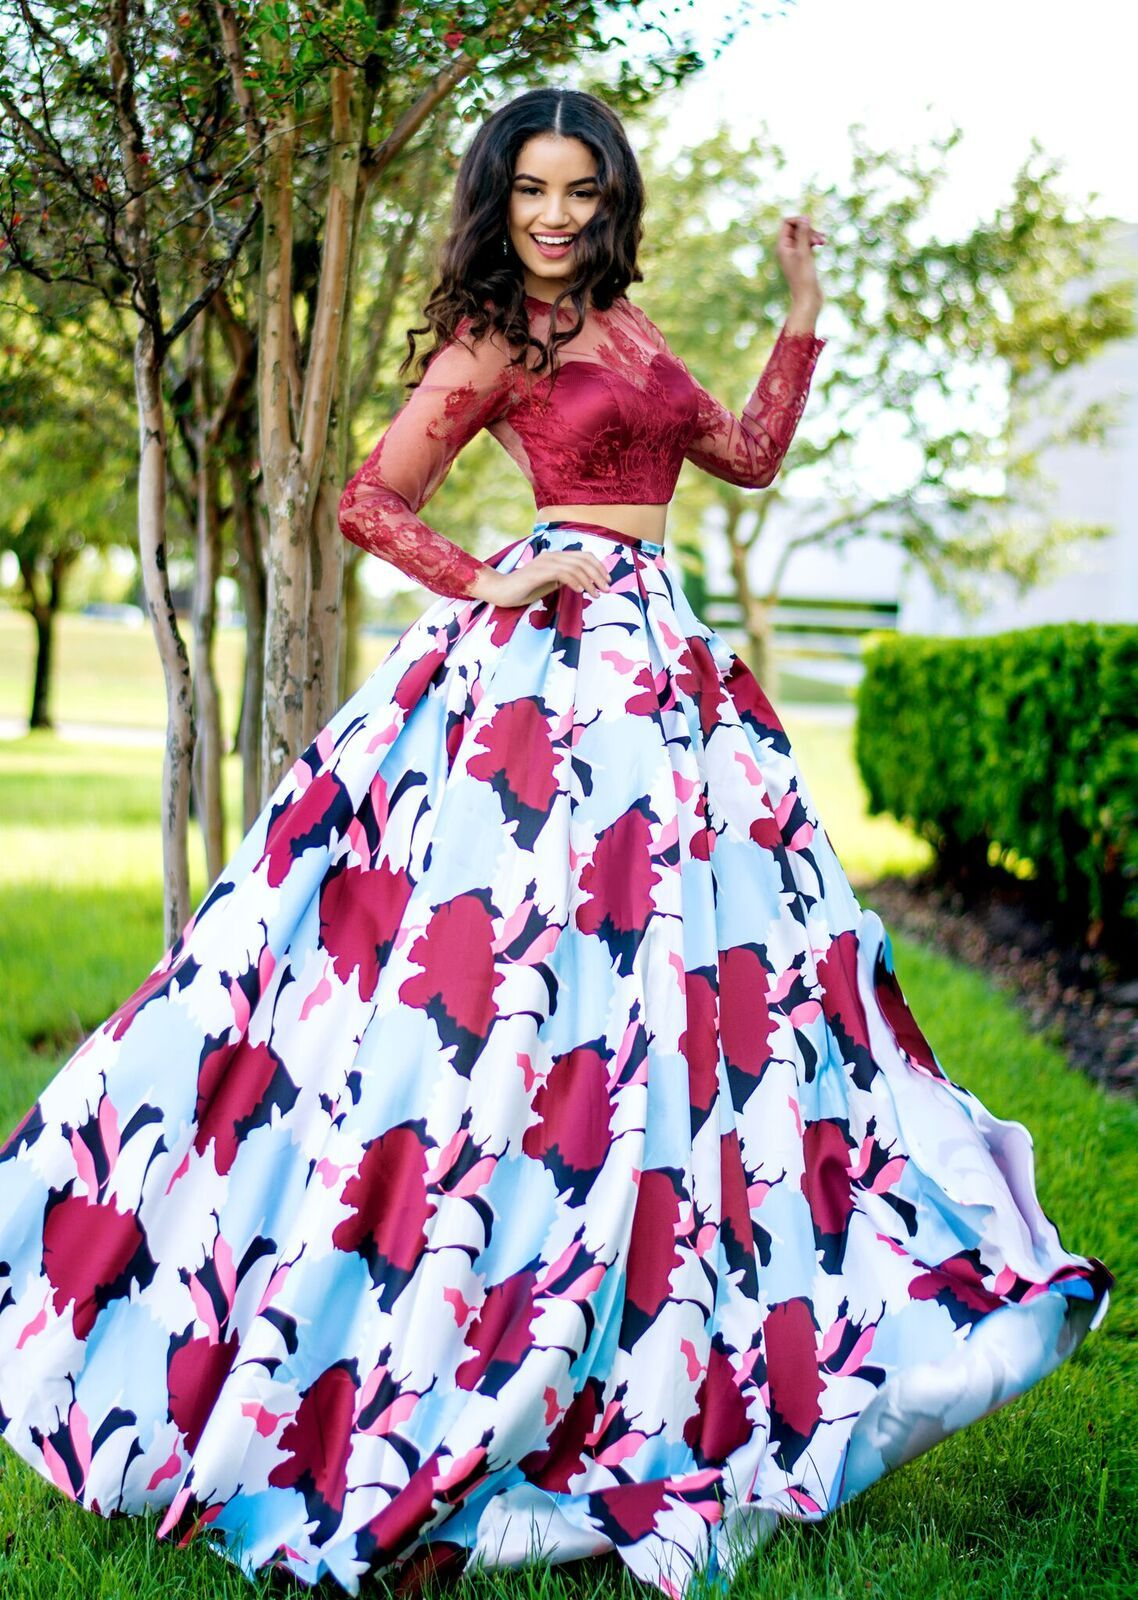 Karishma Creations Two Piece Prom Dress With Lace Long Sleeve Top And Floral Patterned Full Sk Piece Prom Dress African Fashion Dresses Two Piece Wedding Dress [ 1600 x 1138 Pixel ]